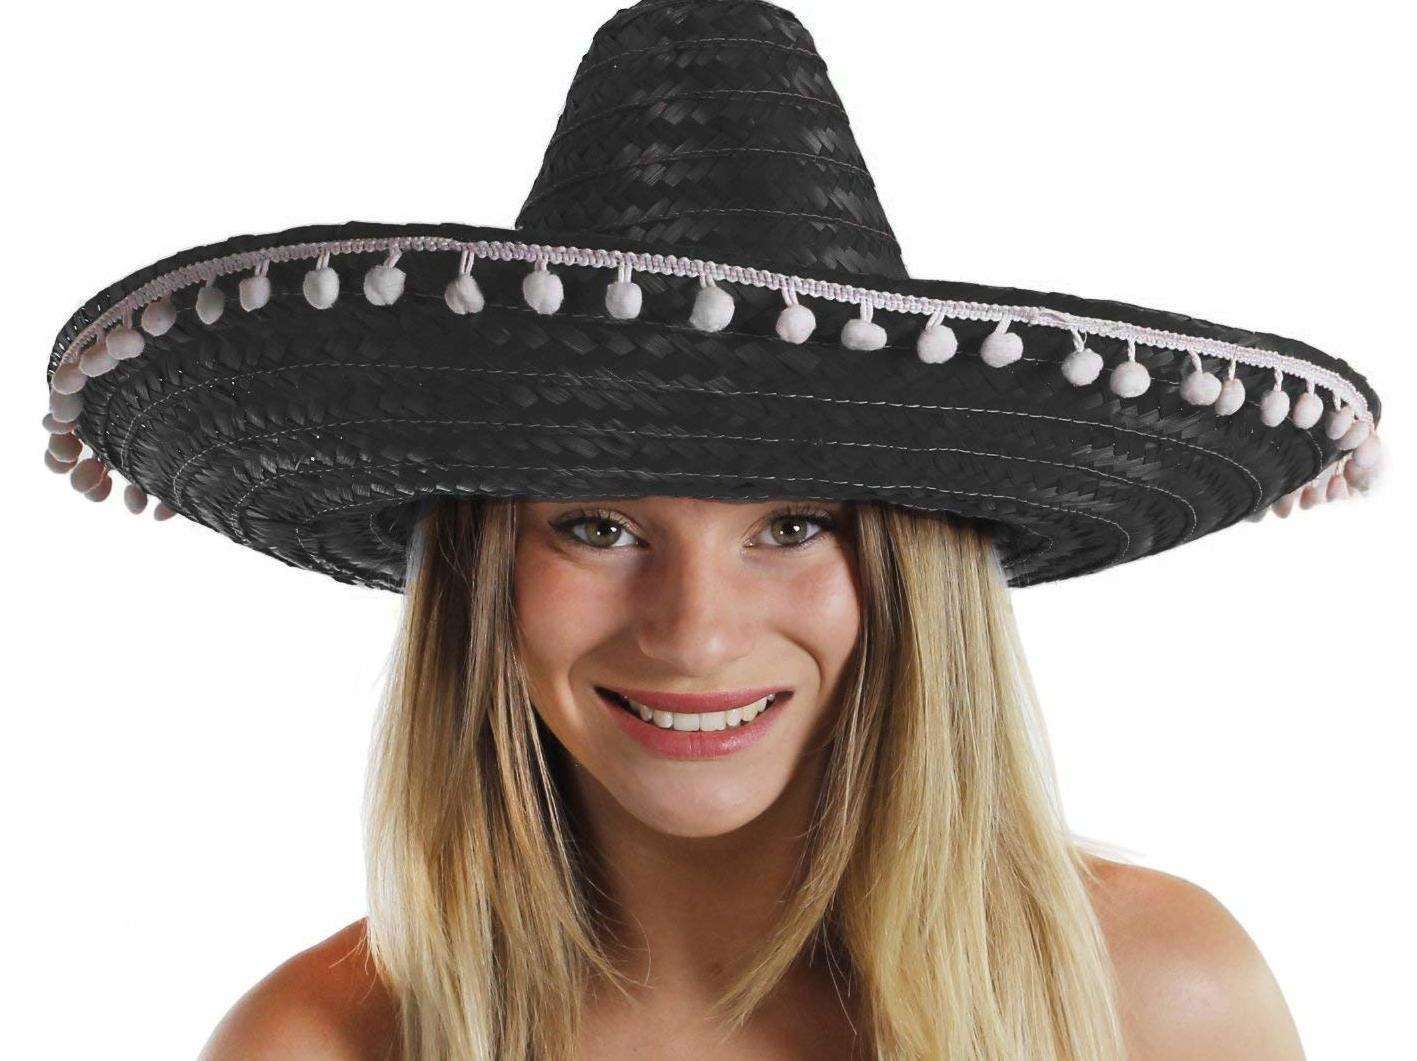 Kent Union has warned against wearing sombreros (4732344)